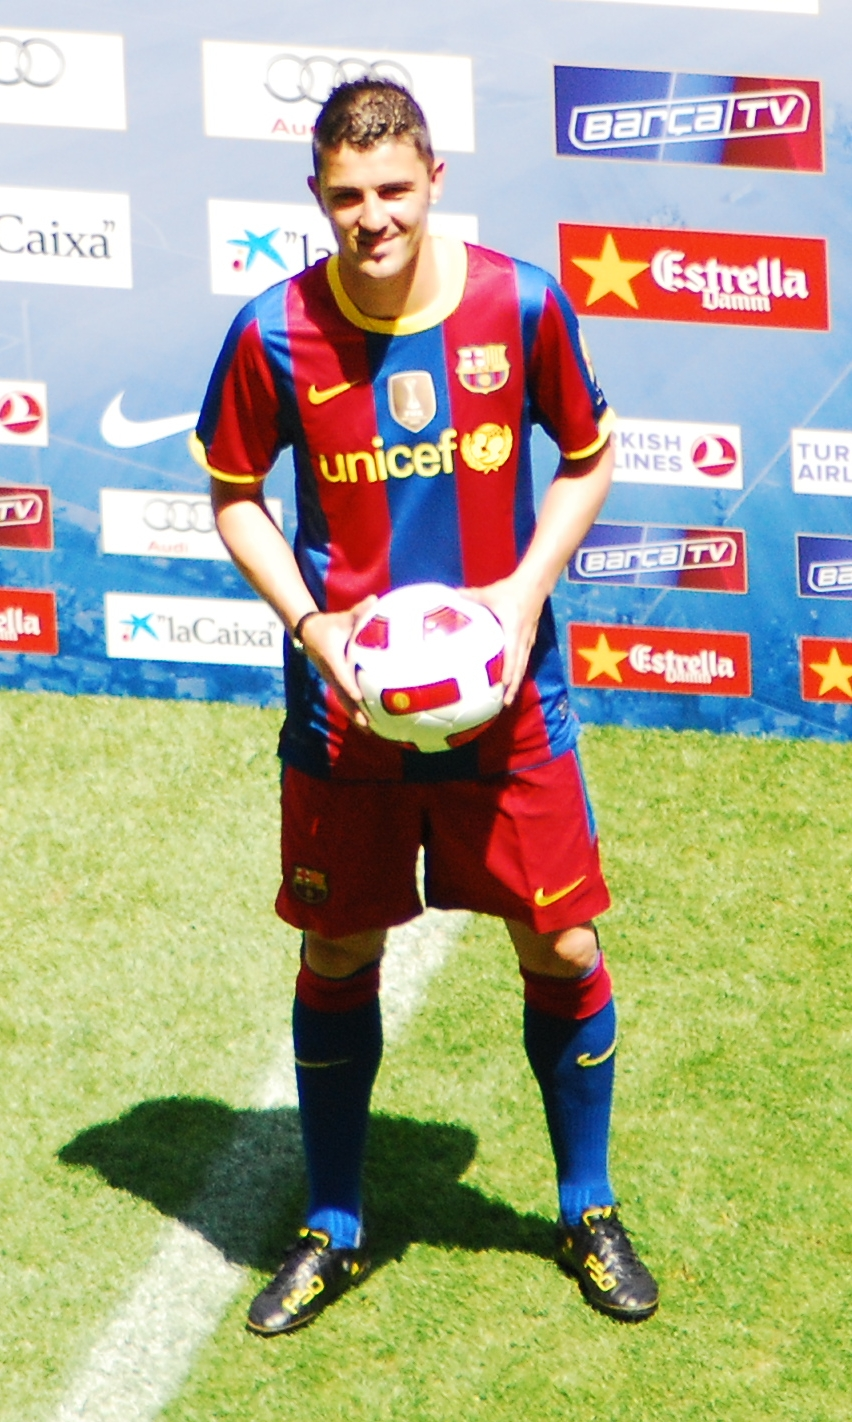 Uniformes do Futbol Club Barcelona – Wikipédia 14d49ecfb9ec8